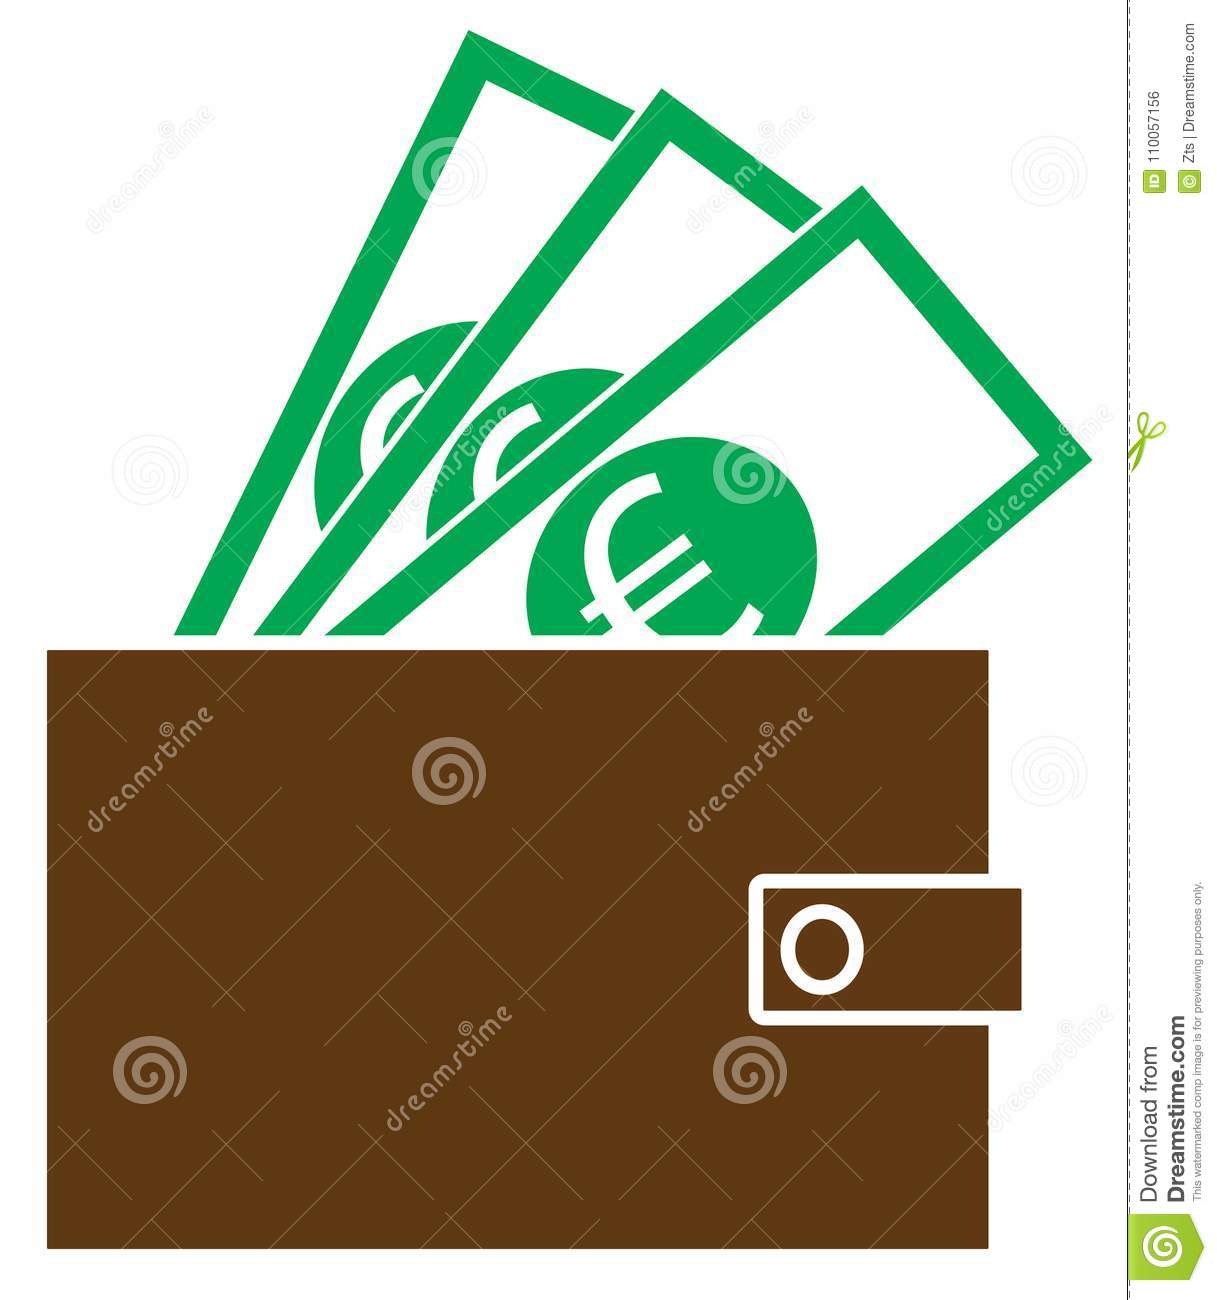 Euro currency icon or logo on notes popping out of a wallet stock euro currency icon or logo on notes popping out of a wallet buycottarizona Choice Image